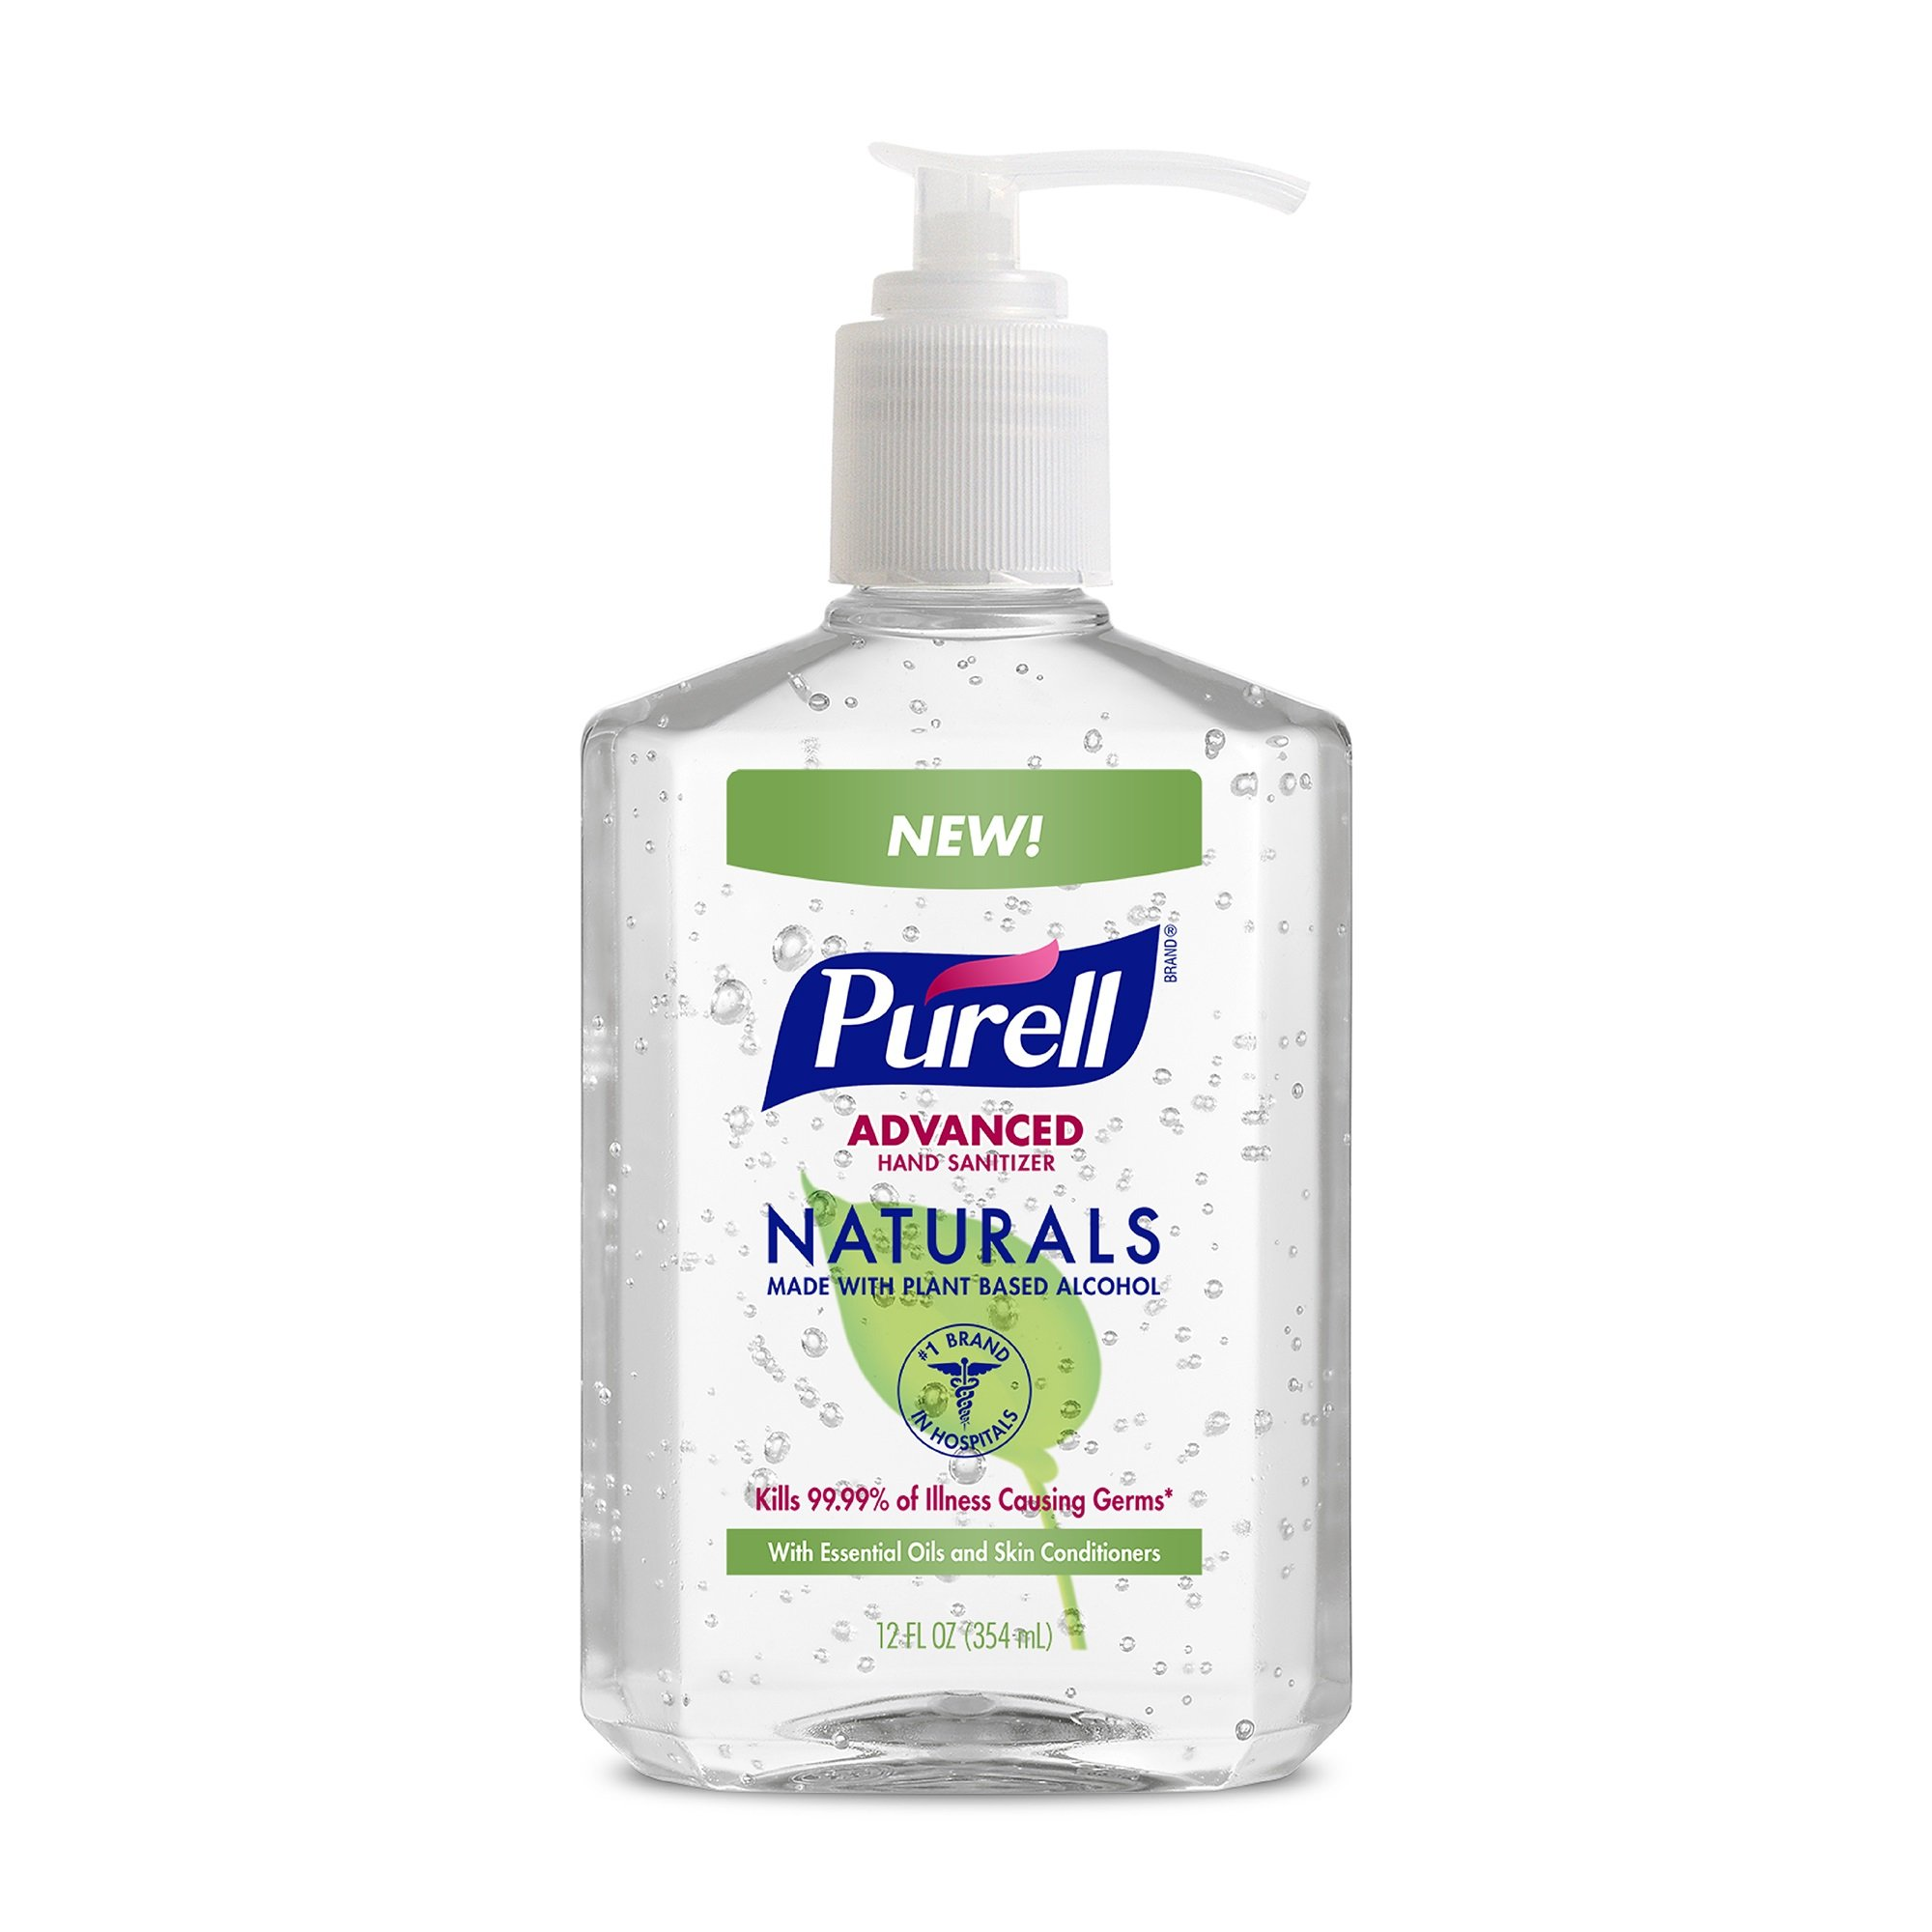 PURELL Naturals Advanced Hand Sanitizer - Hand Sanitizer Gel with Essential Oils, 12 fl oz Pump Bottle (Pack of 2) - 9629-06-EC